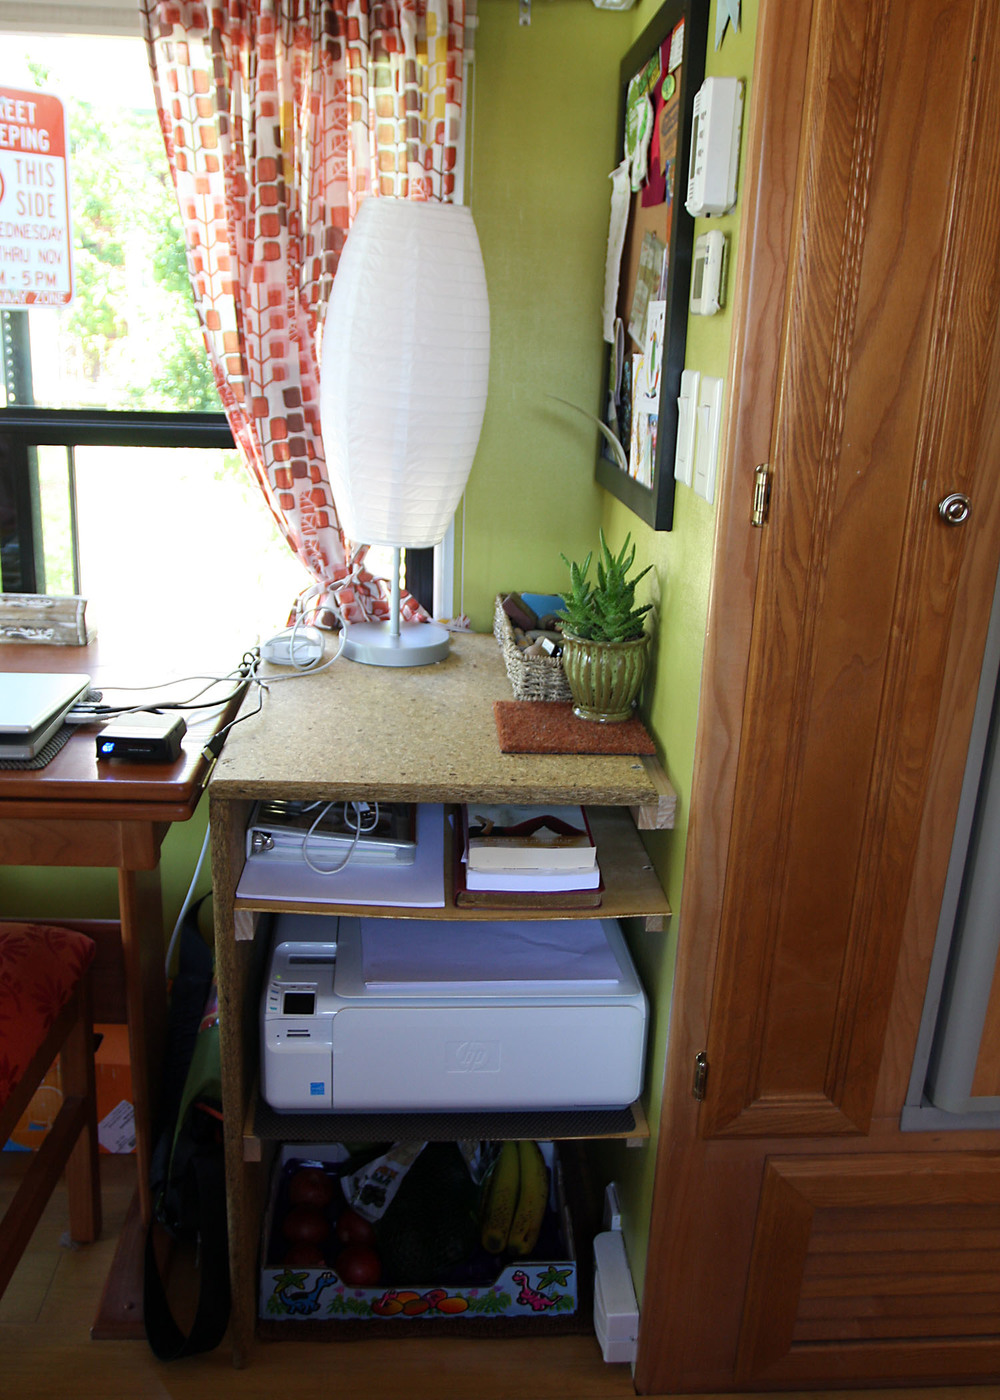 05_Printer and Hard Drive Shelf.jpg